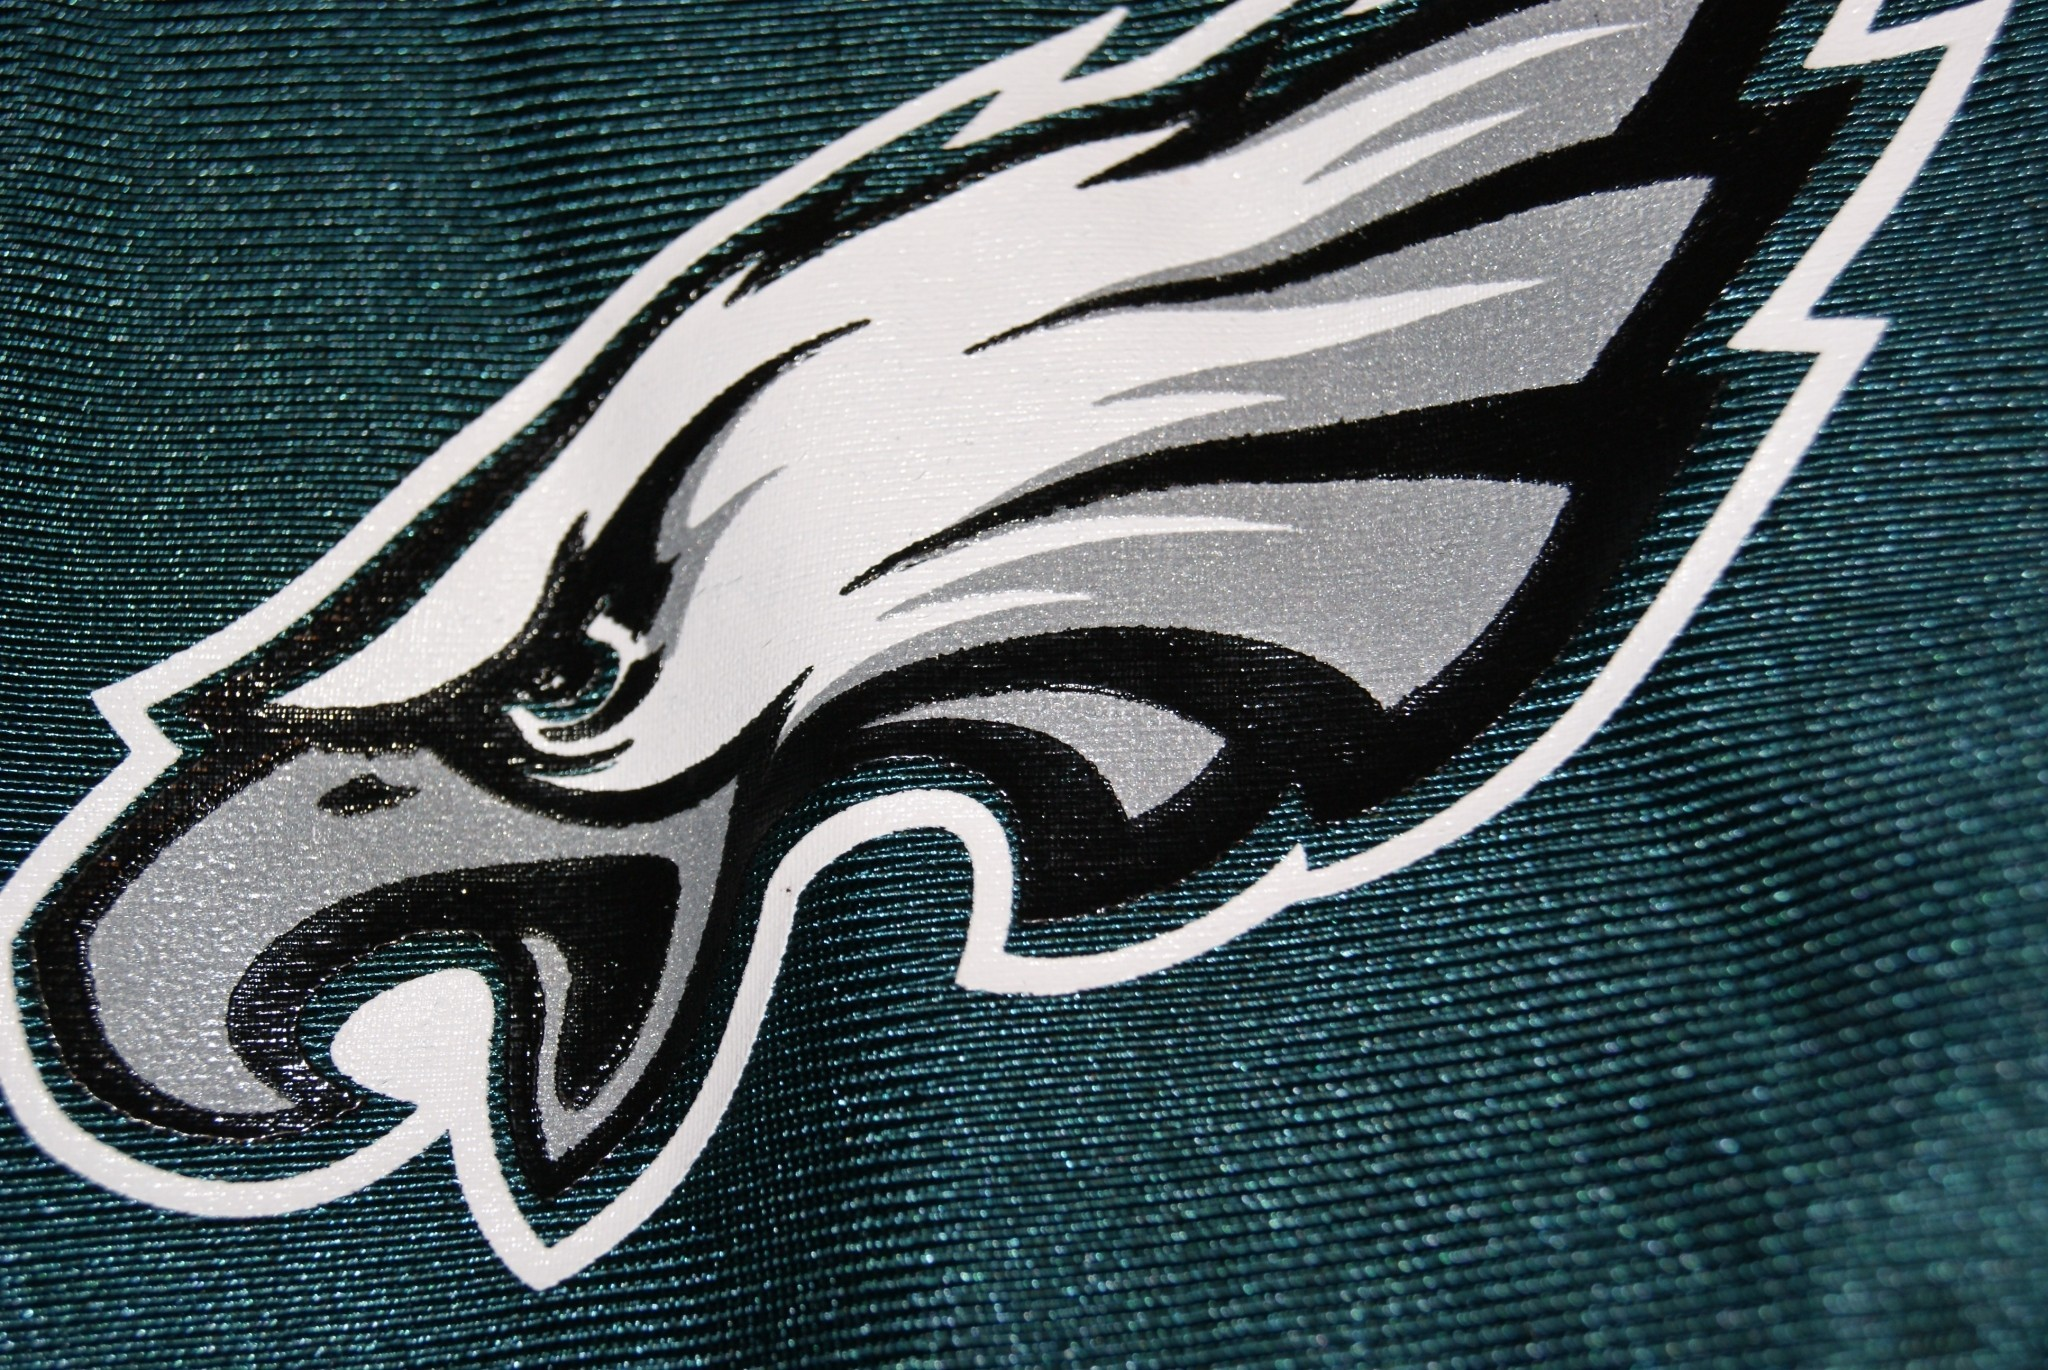 2048x1370 1920x1080 Free Philadelphia Eagles Wallpapers (52 Wallpapers) – HD  Wallpapers